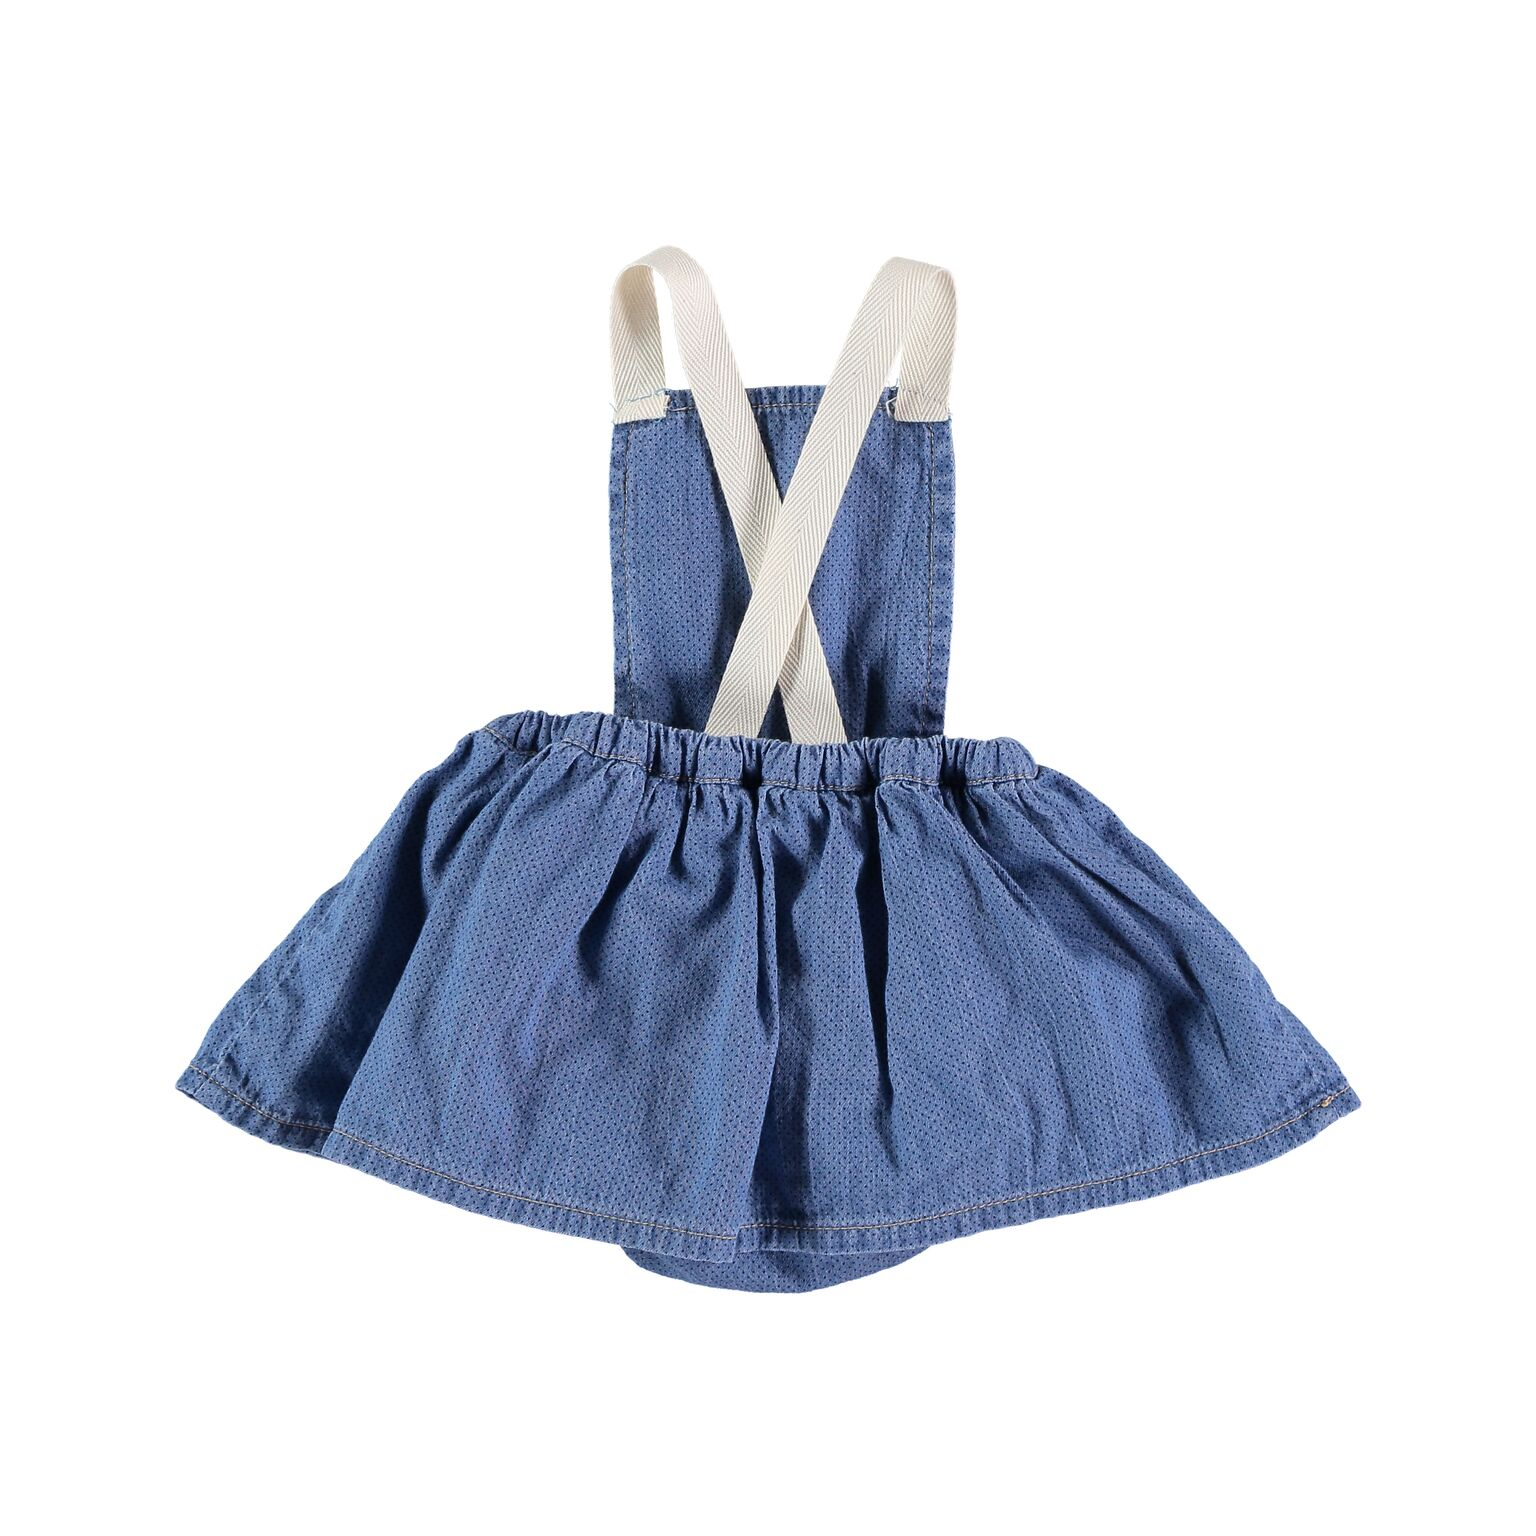 aff5da64dfed6 robe-dress-buho-enfant-tablier-denim